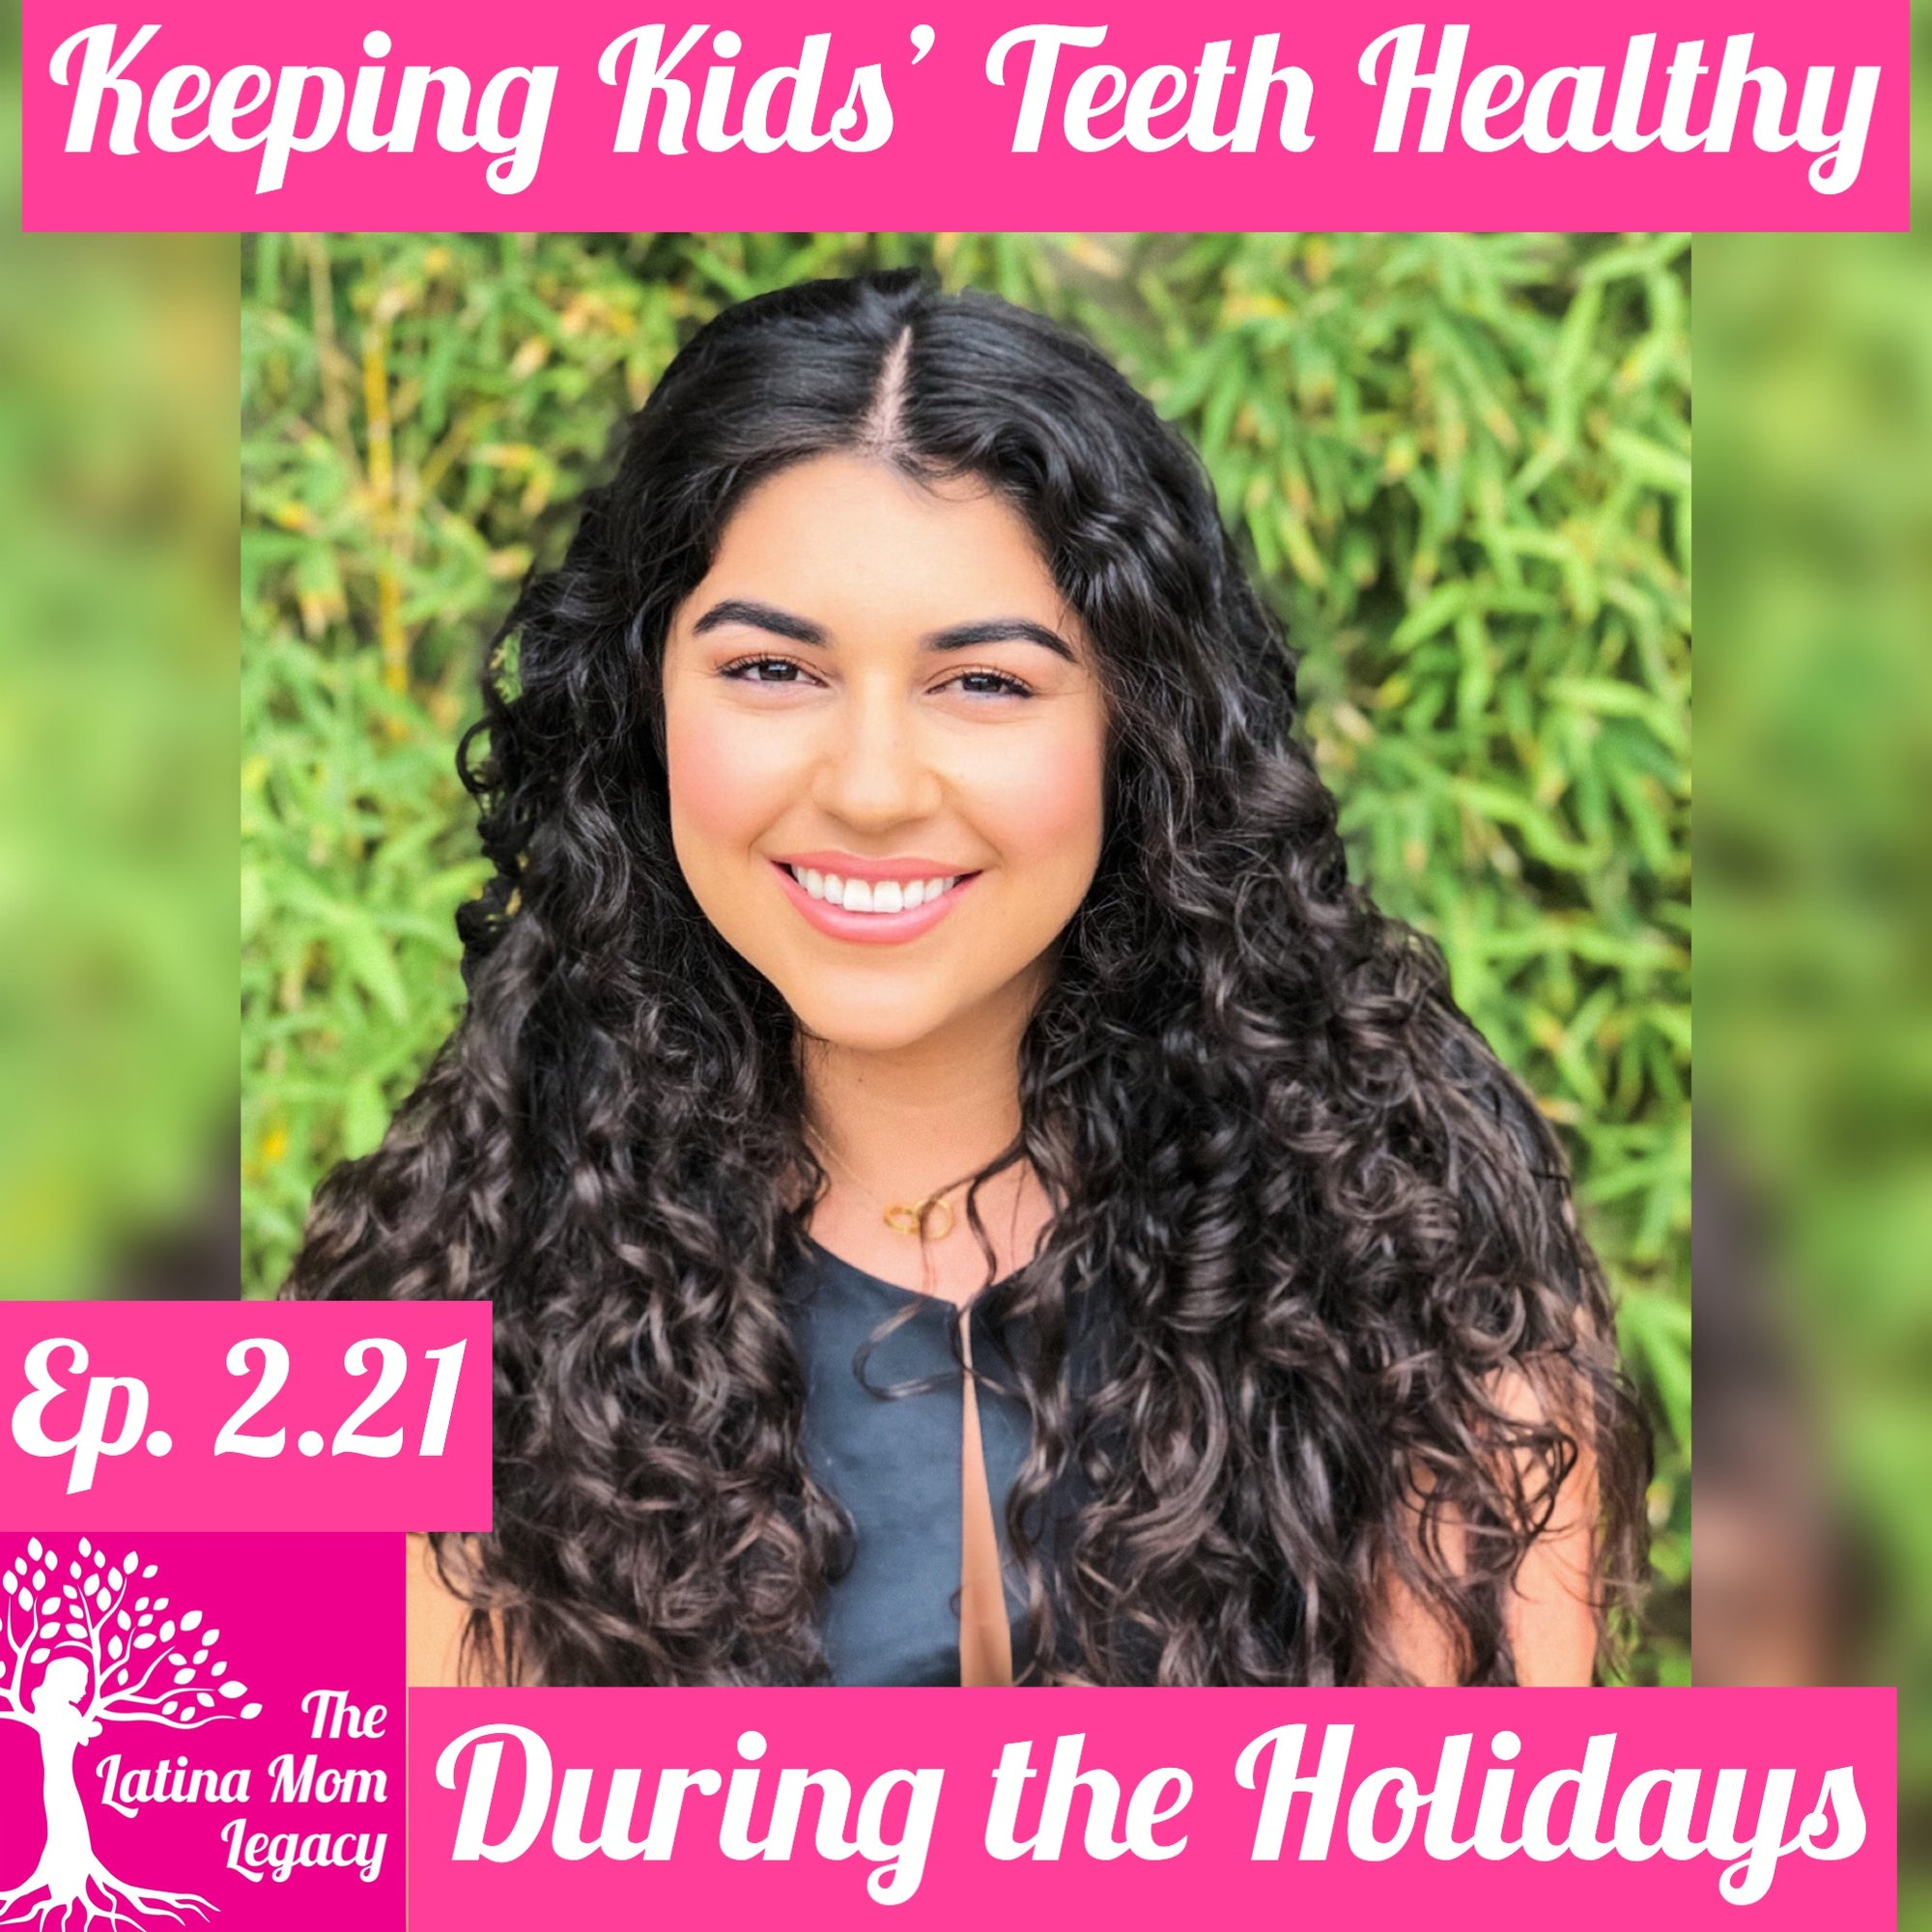 2.21 - Ivy Fua - Keeping Keeps Teeth Healthy During the Holidays